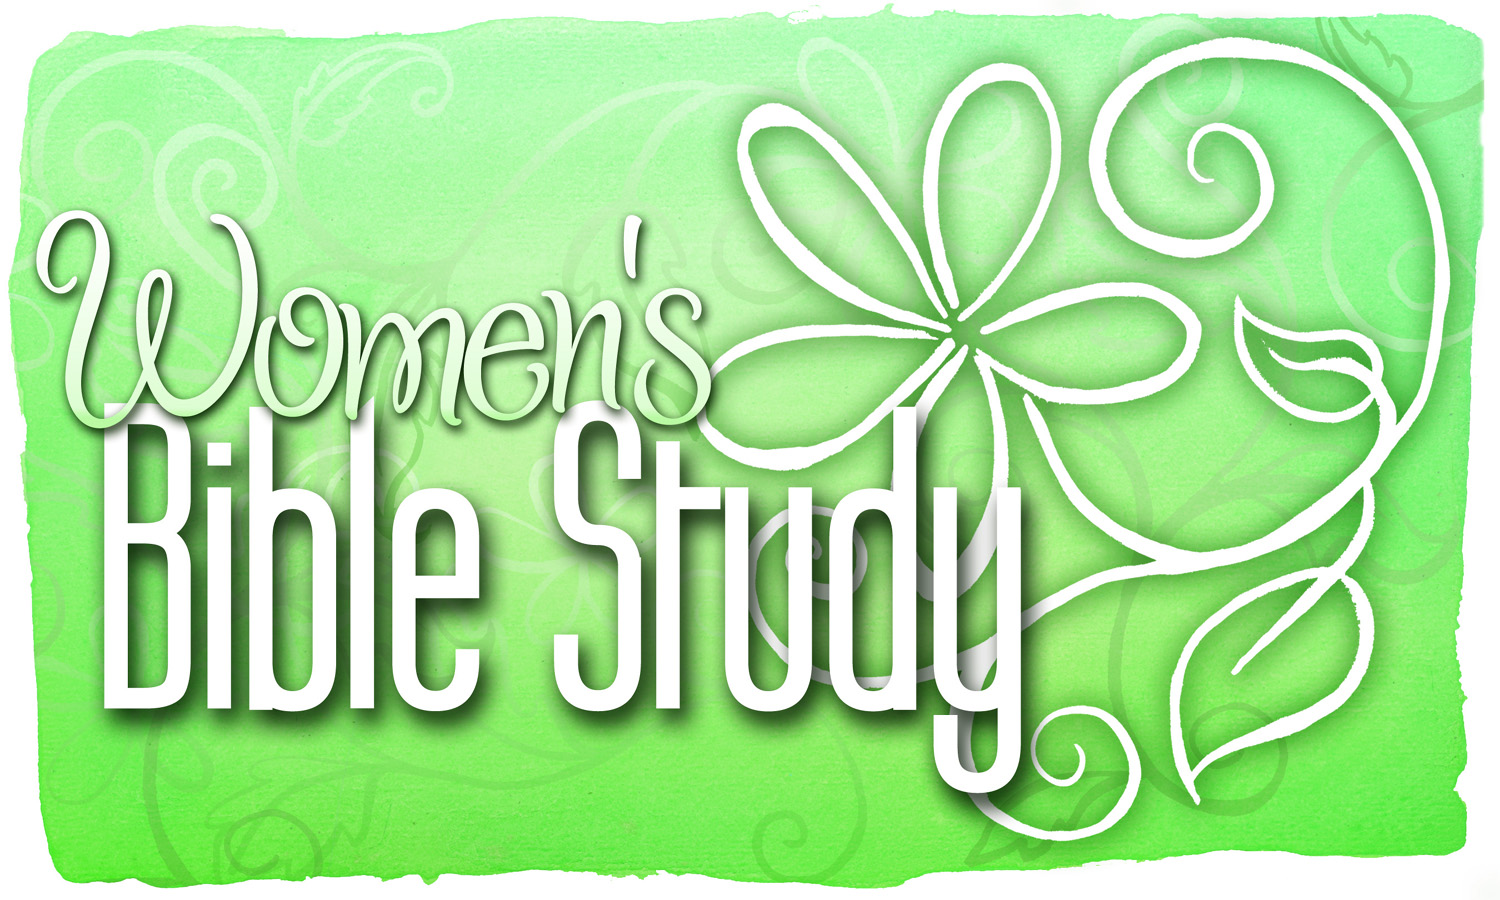 Lutheran womens bible study